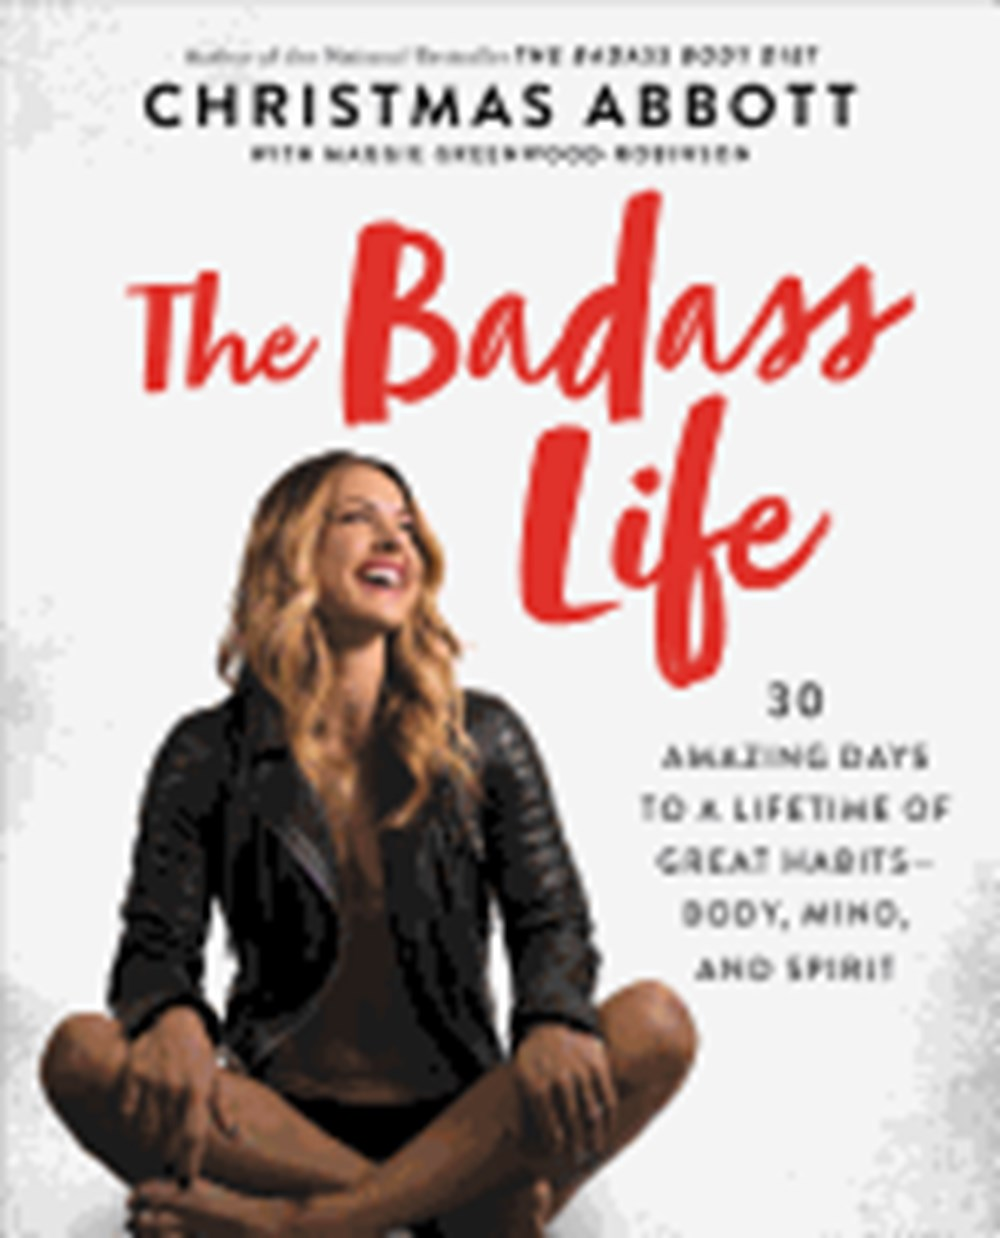 Badass Life 30 Amazing Days to a Lifetime of Great Habits--Body, Mind, and Spirit